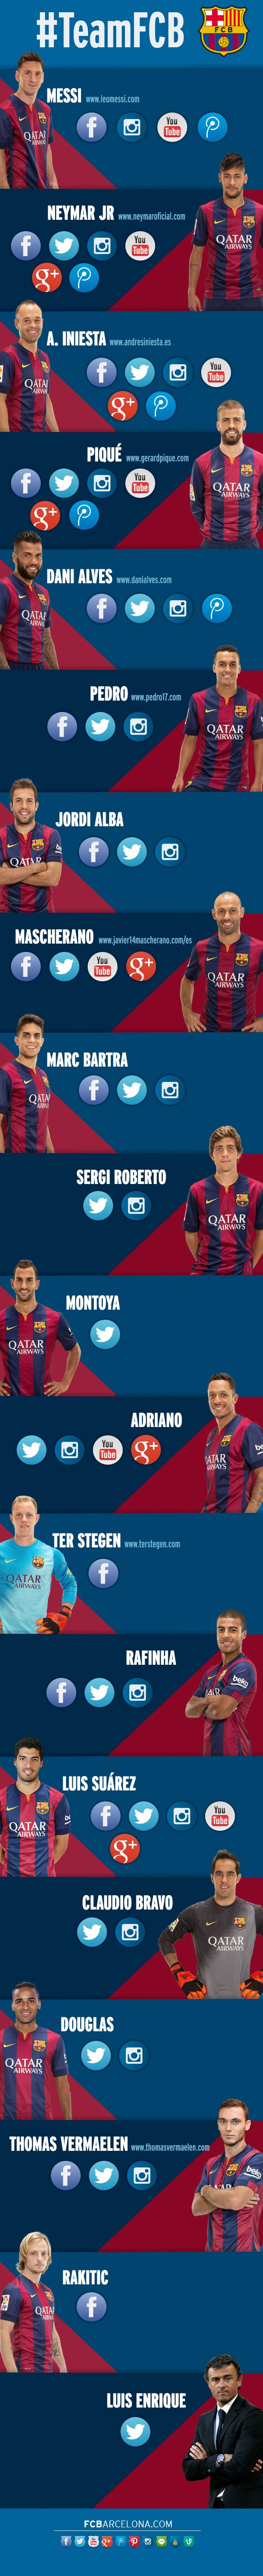 TOUCH this image: #TeamFCB by FC Barcelona